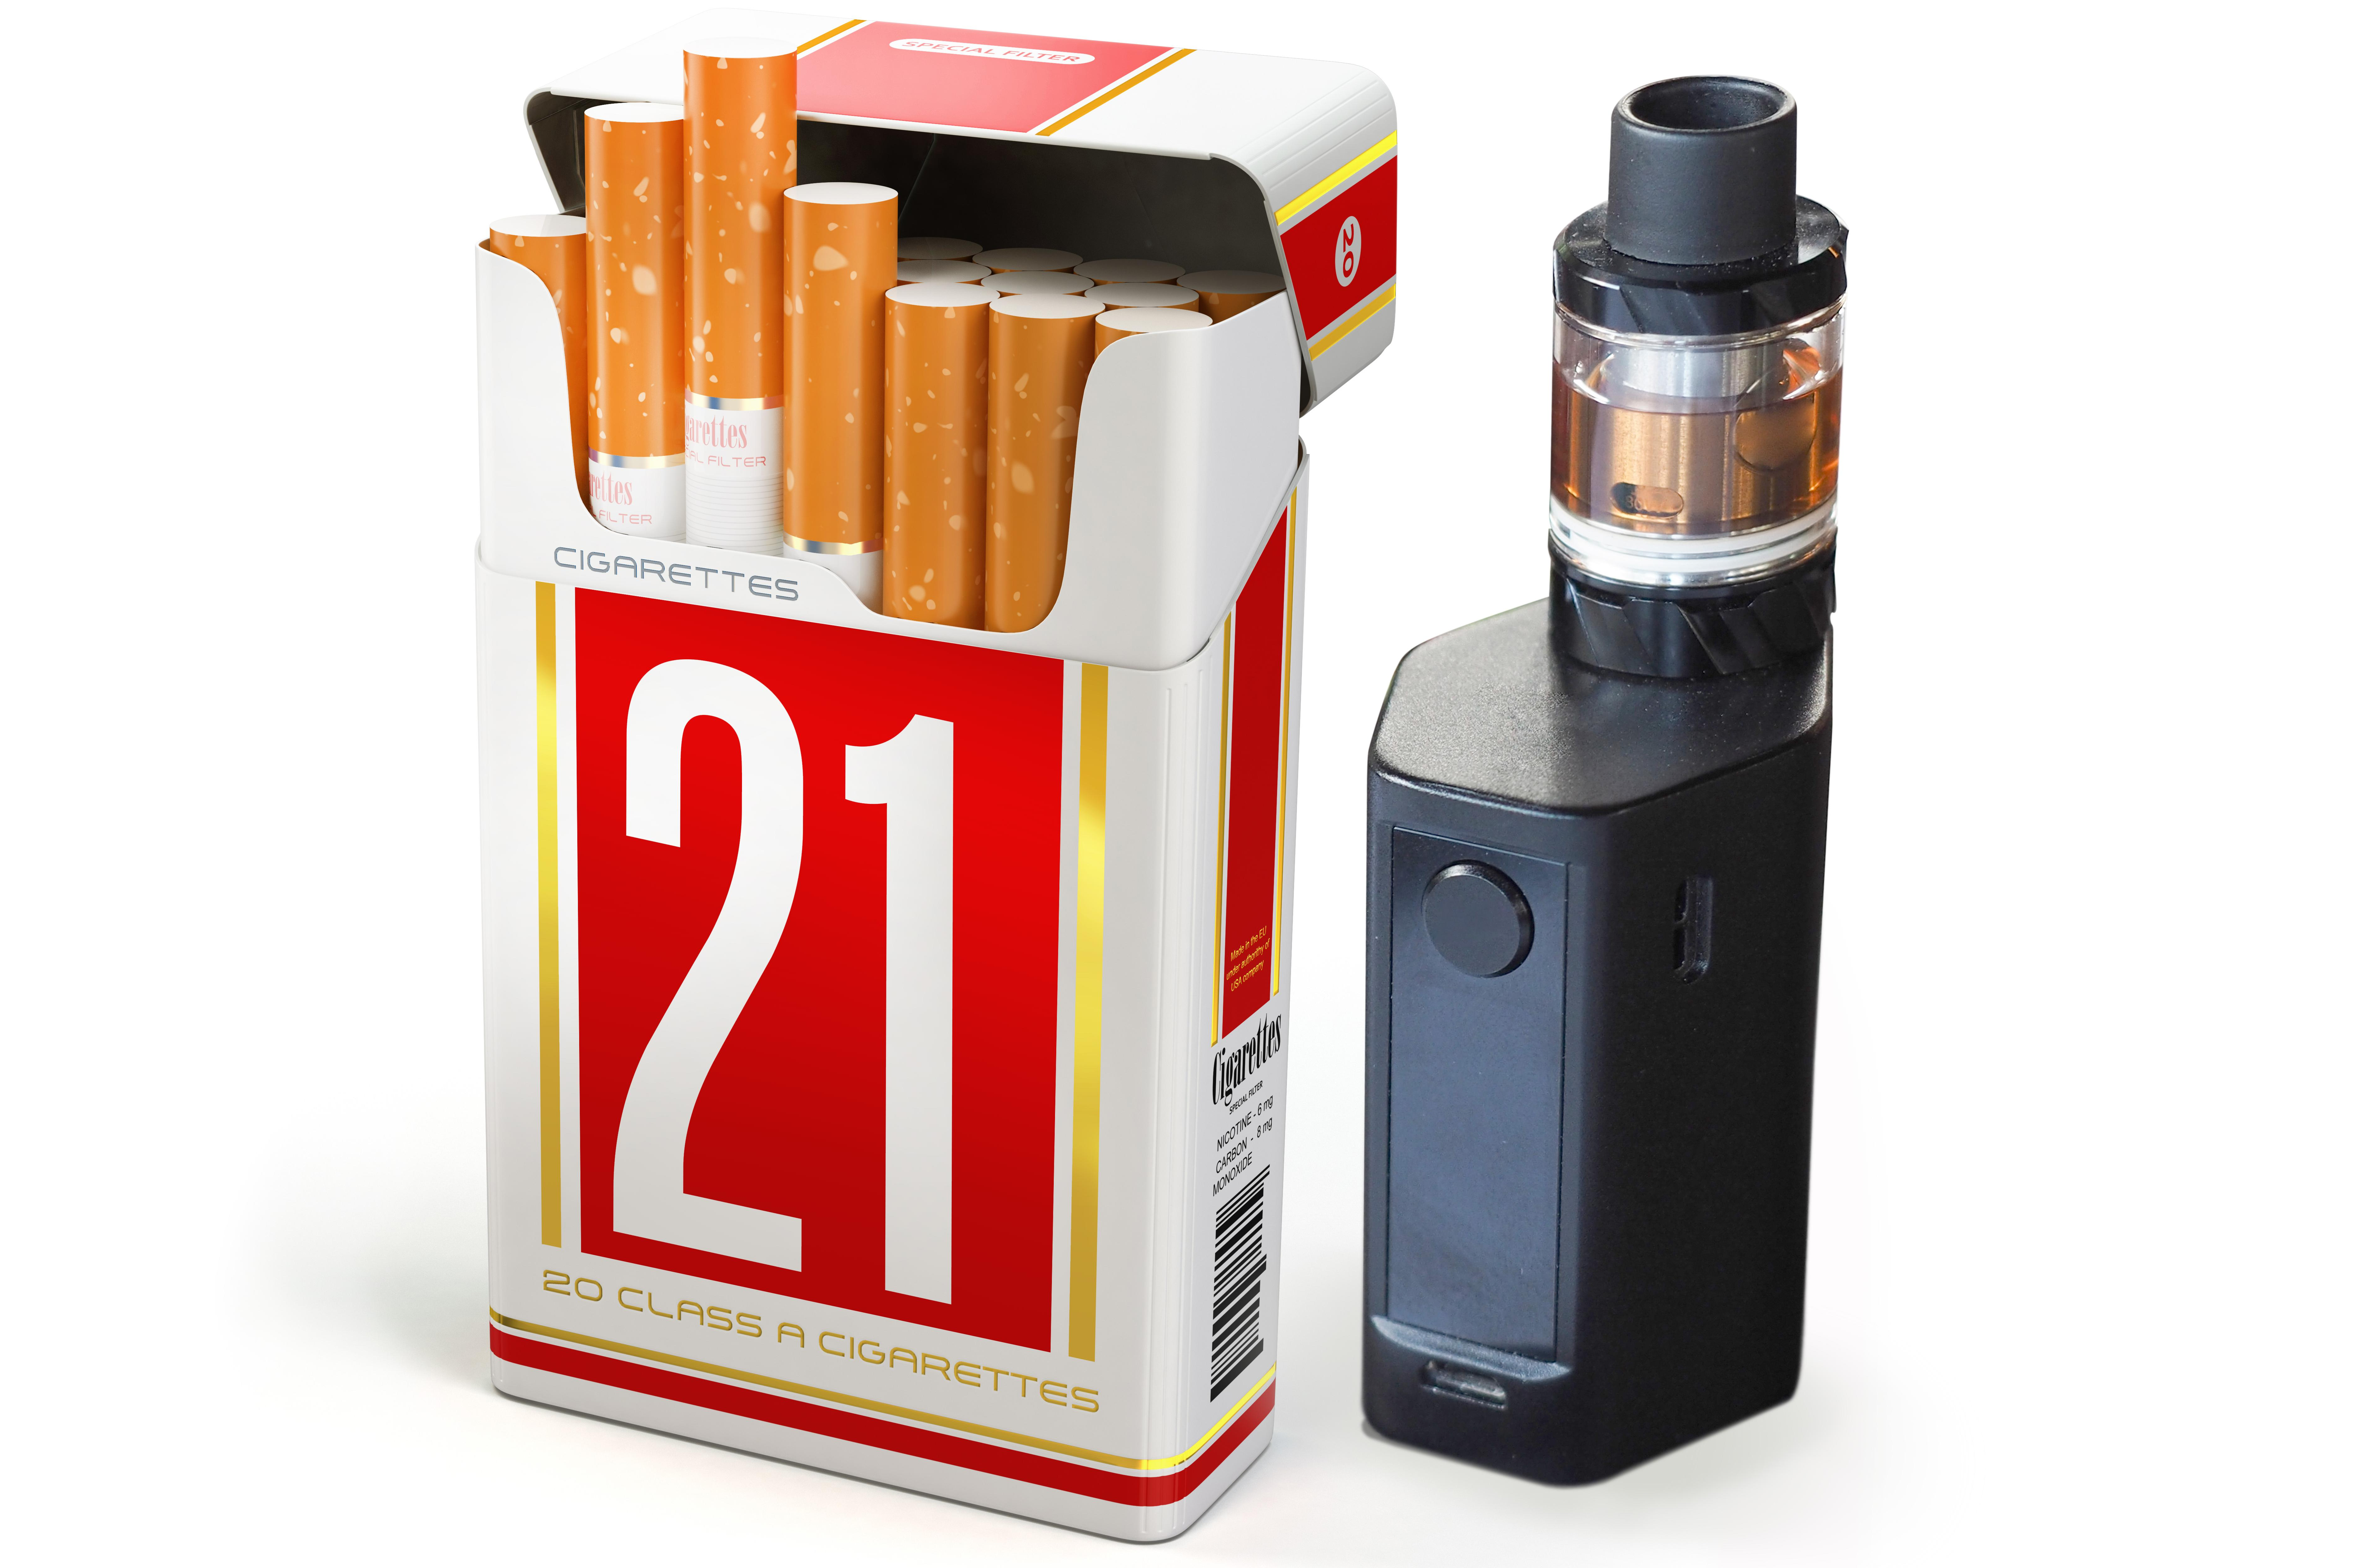 House votes to raise smoking age to 21 | The Spokesman-Review